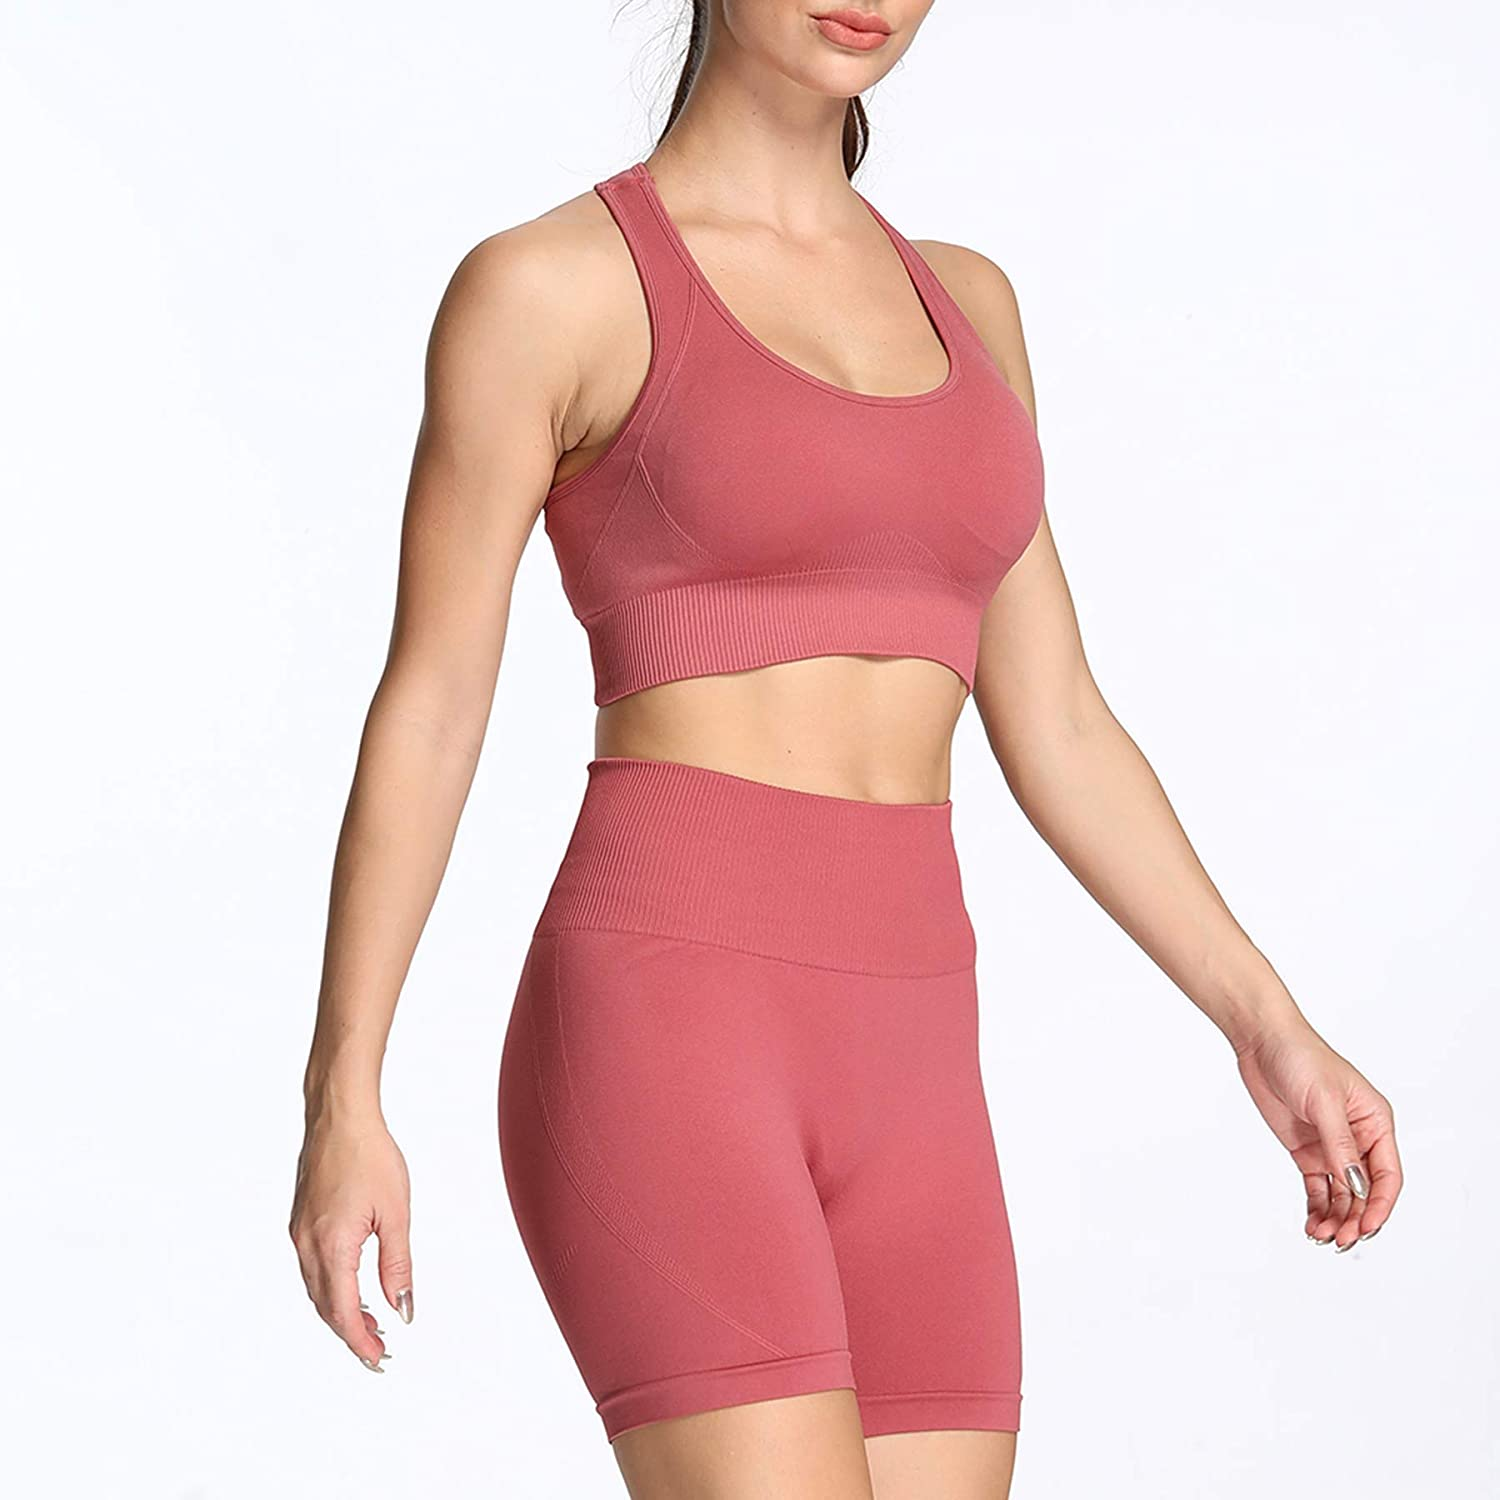 Aoxjox Exercise Outfits for Women 2 Pieces Hyperflex Lightweight Seamless Yoga Outfits Crop Tops and Leggings Set Tracksuits